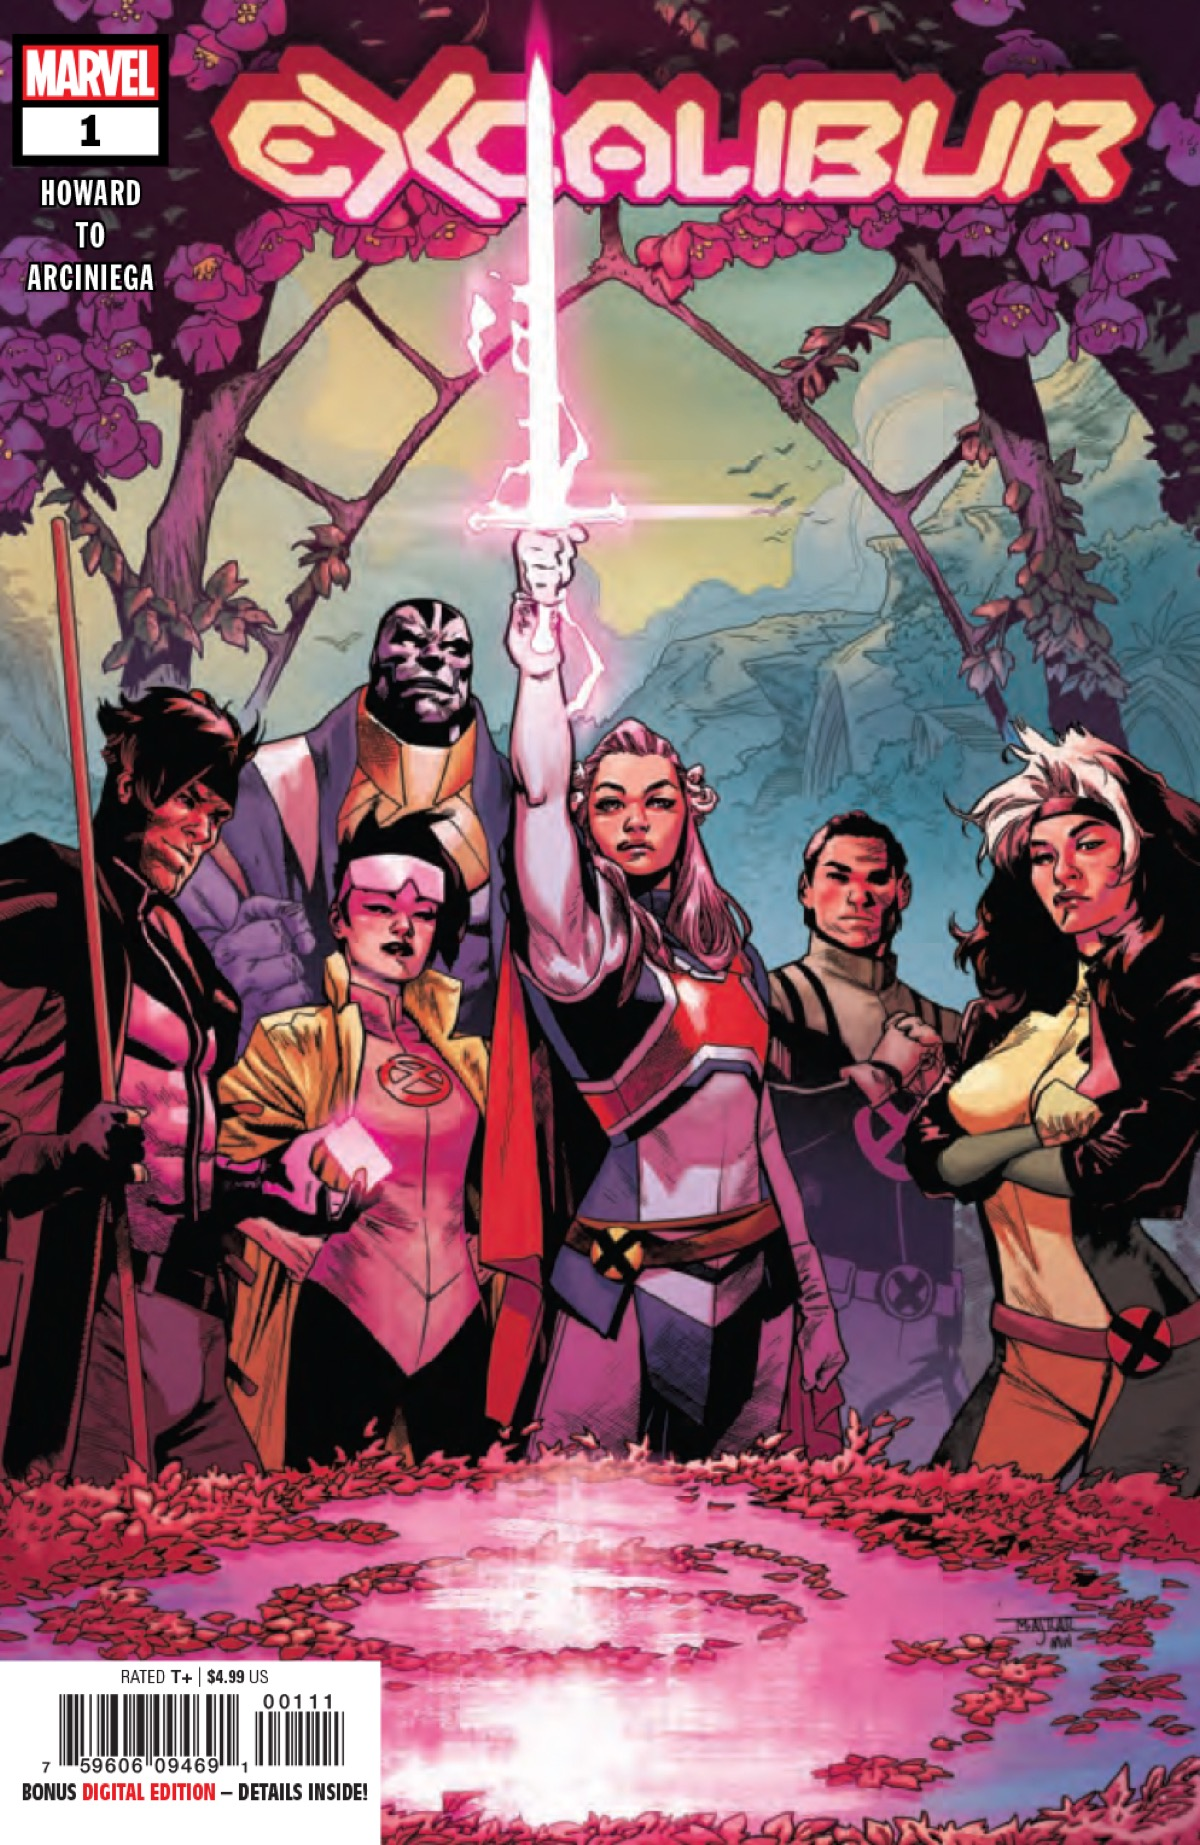 Excalibur #1 Sets the Standard for the Dawn of X [X-ual Healing 10-31-19]